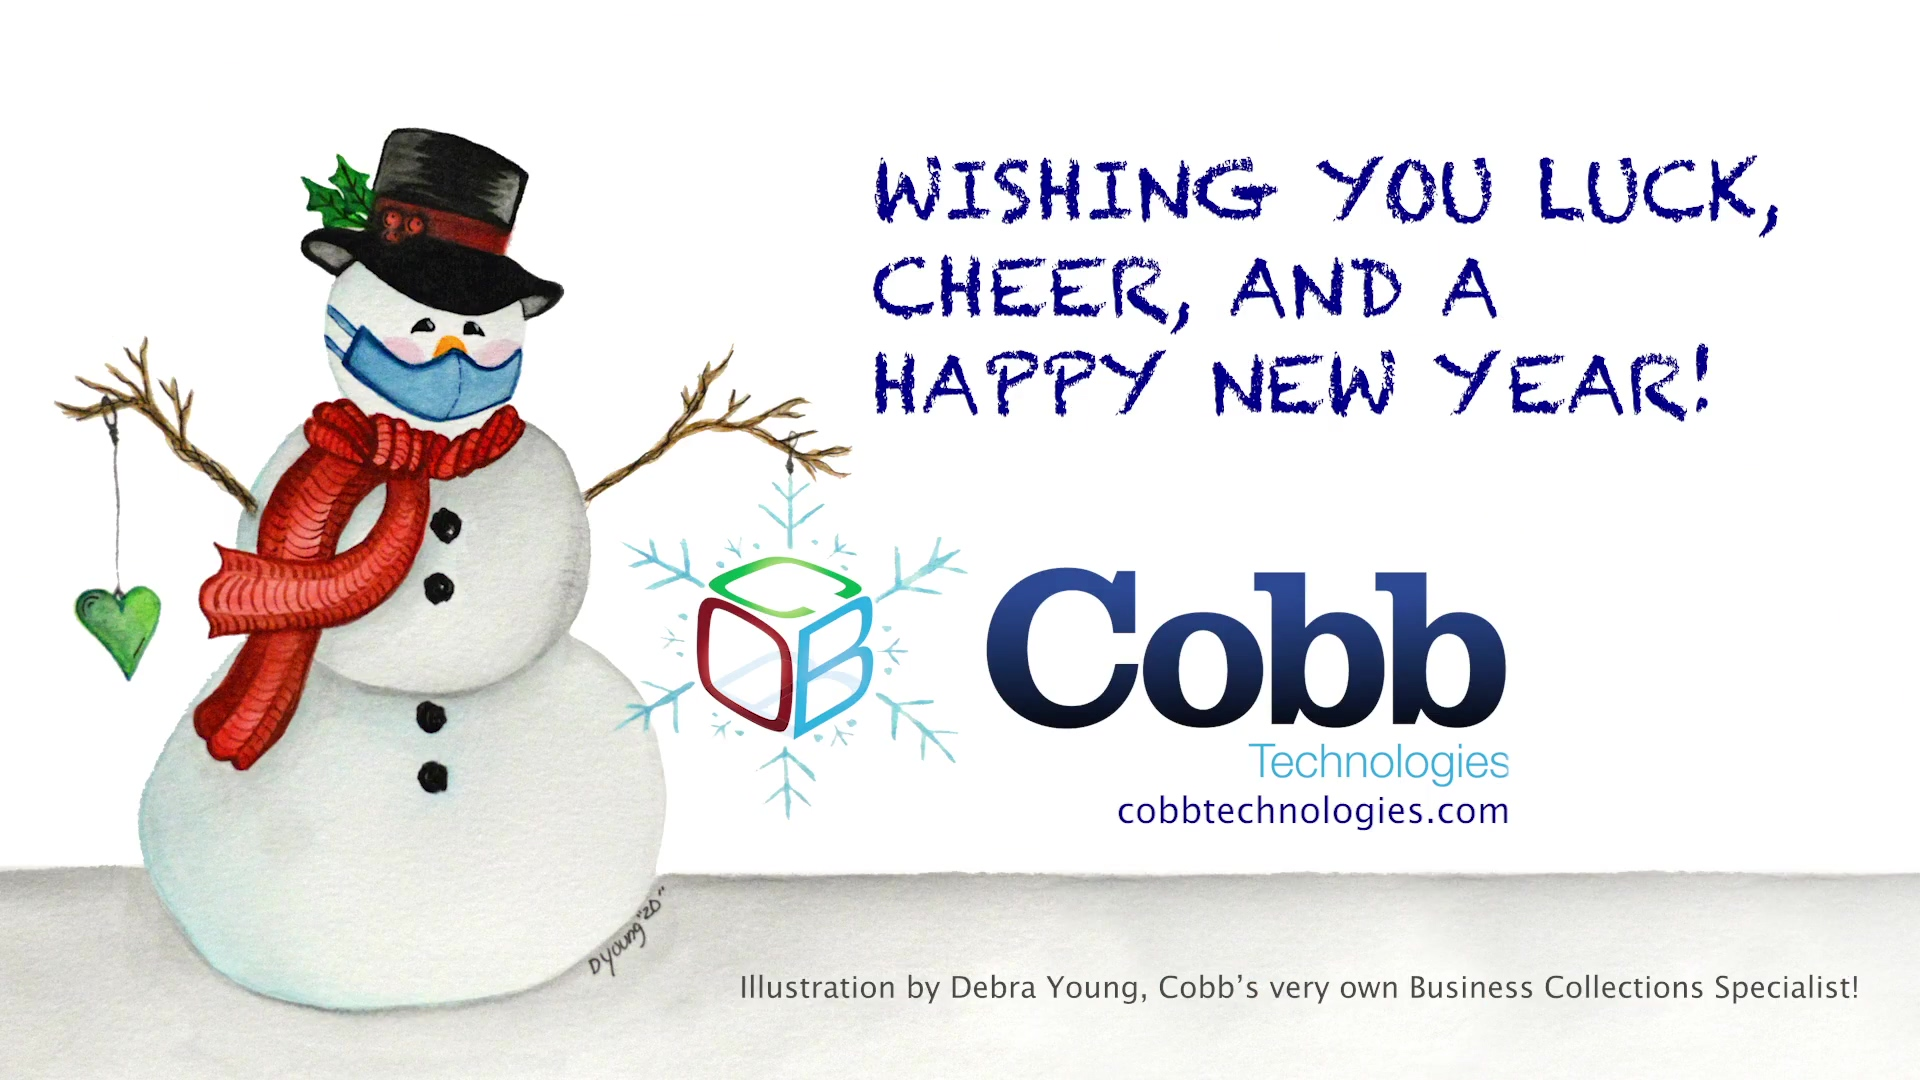 Happy Holidays From Our Cobb Family to Yours!